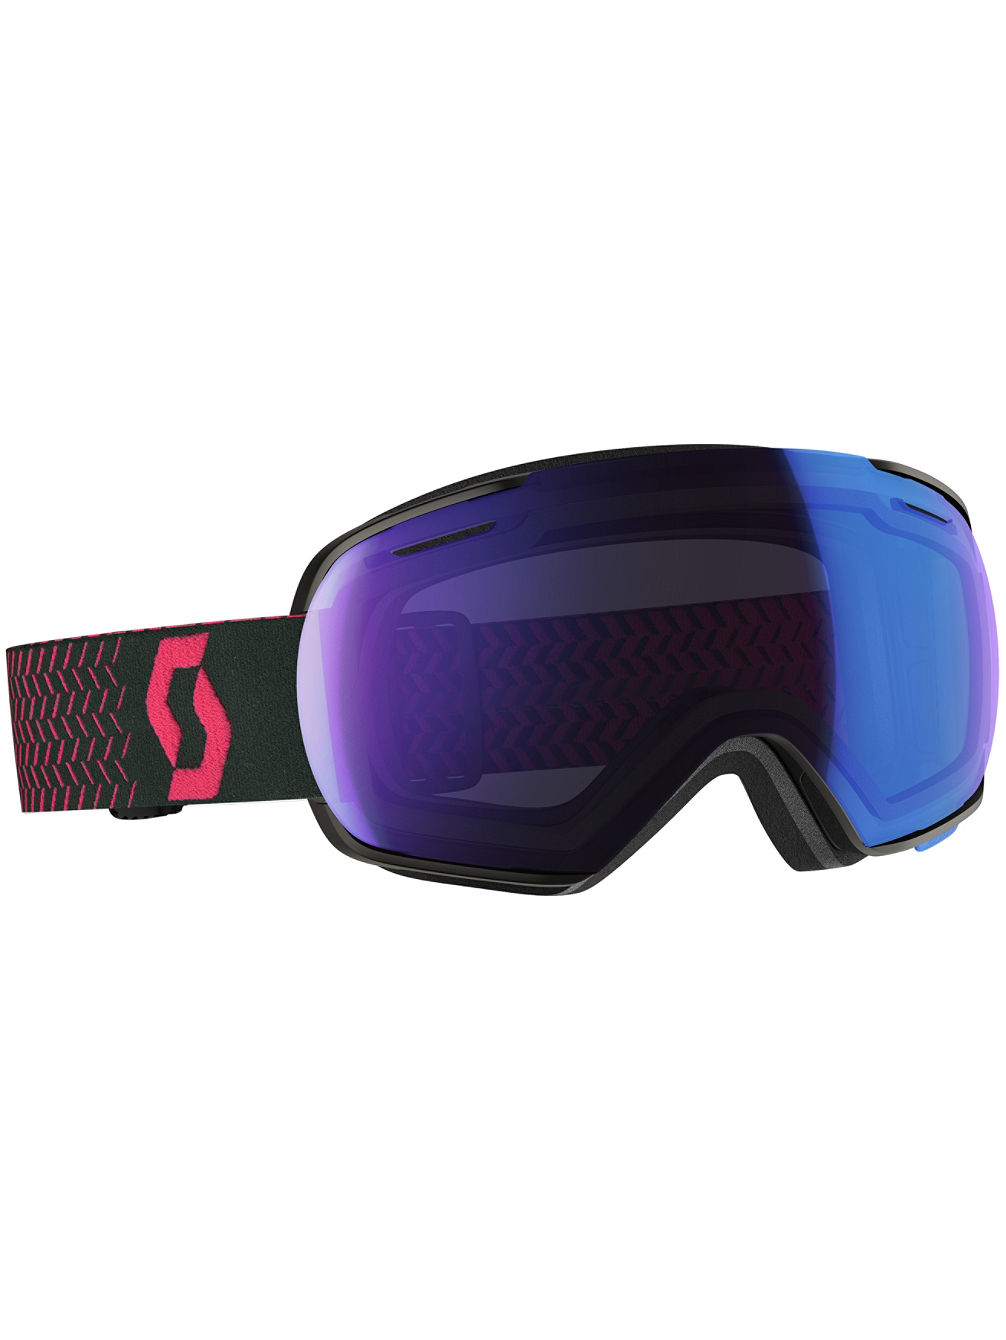 Linx Black/Pink Goggle